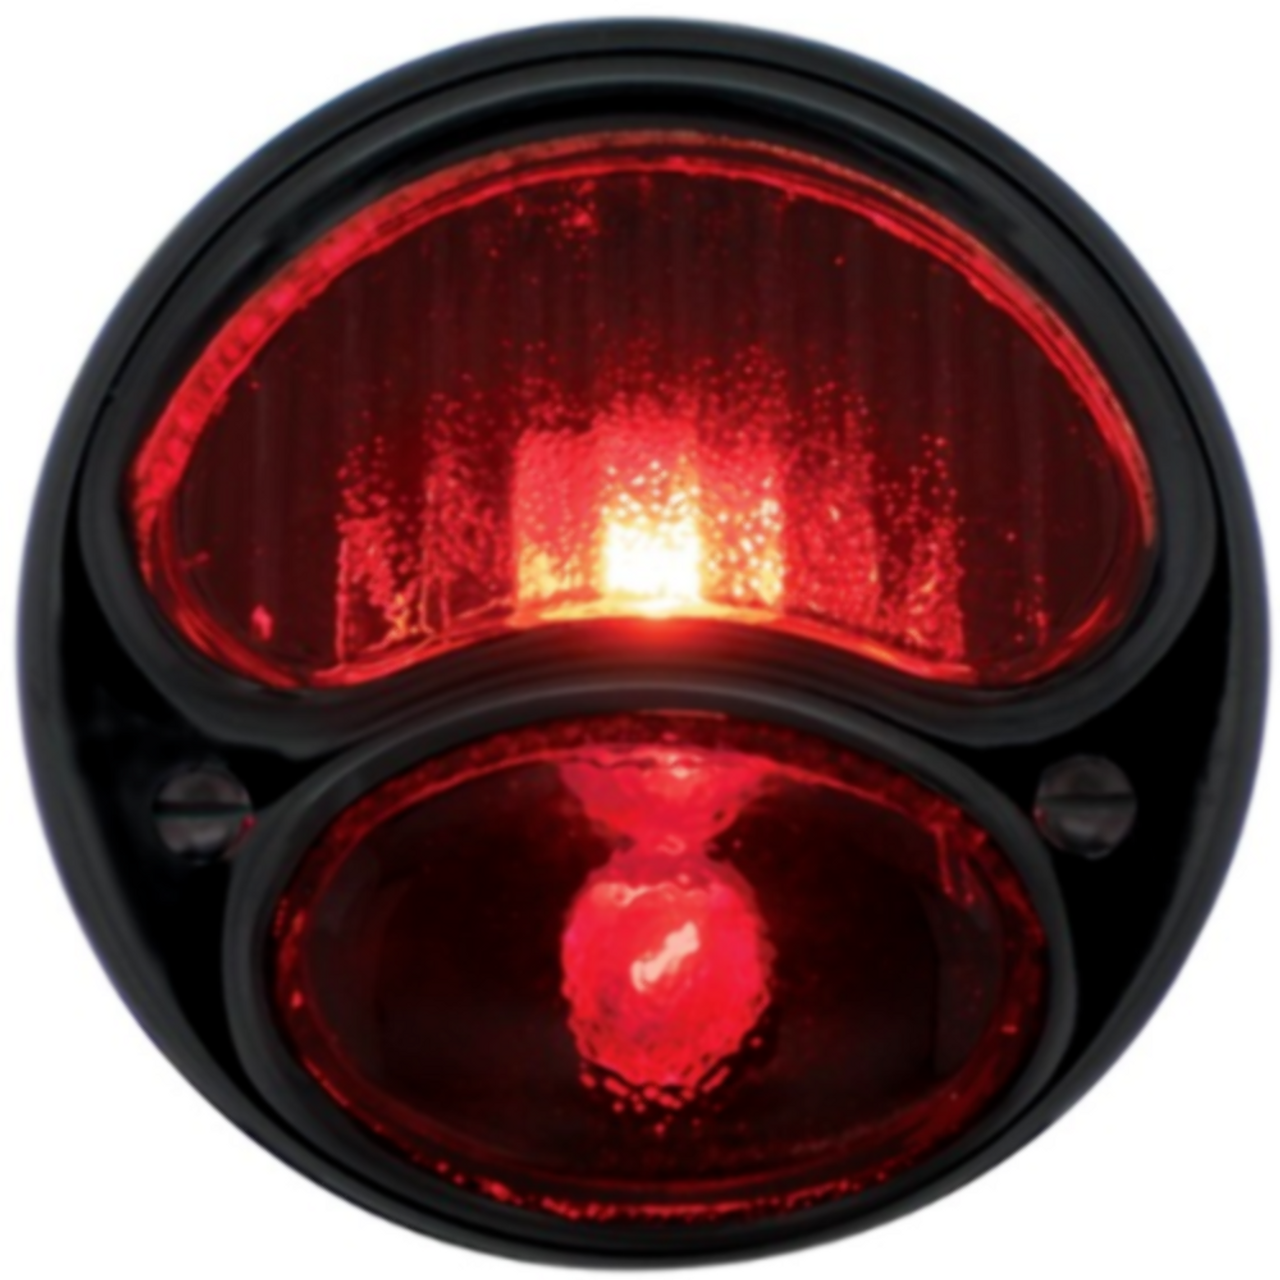 TAIL LIGHT WITH ALL BLACK HOUSING - R/H, Fits 1928-31 INCANDESCENT FORD MODEL A